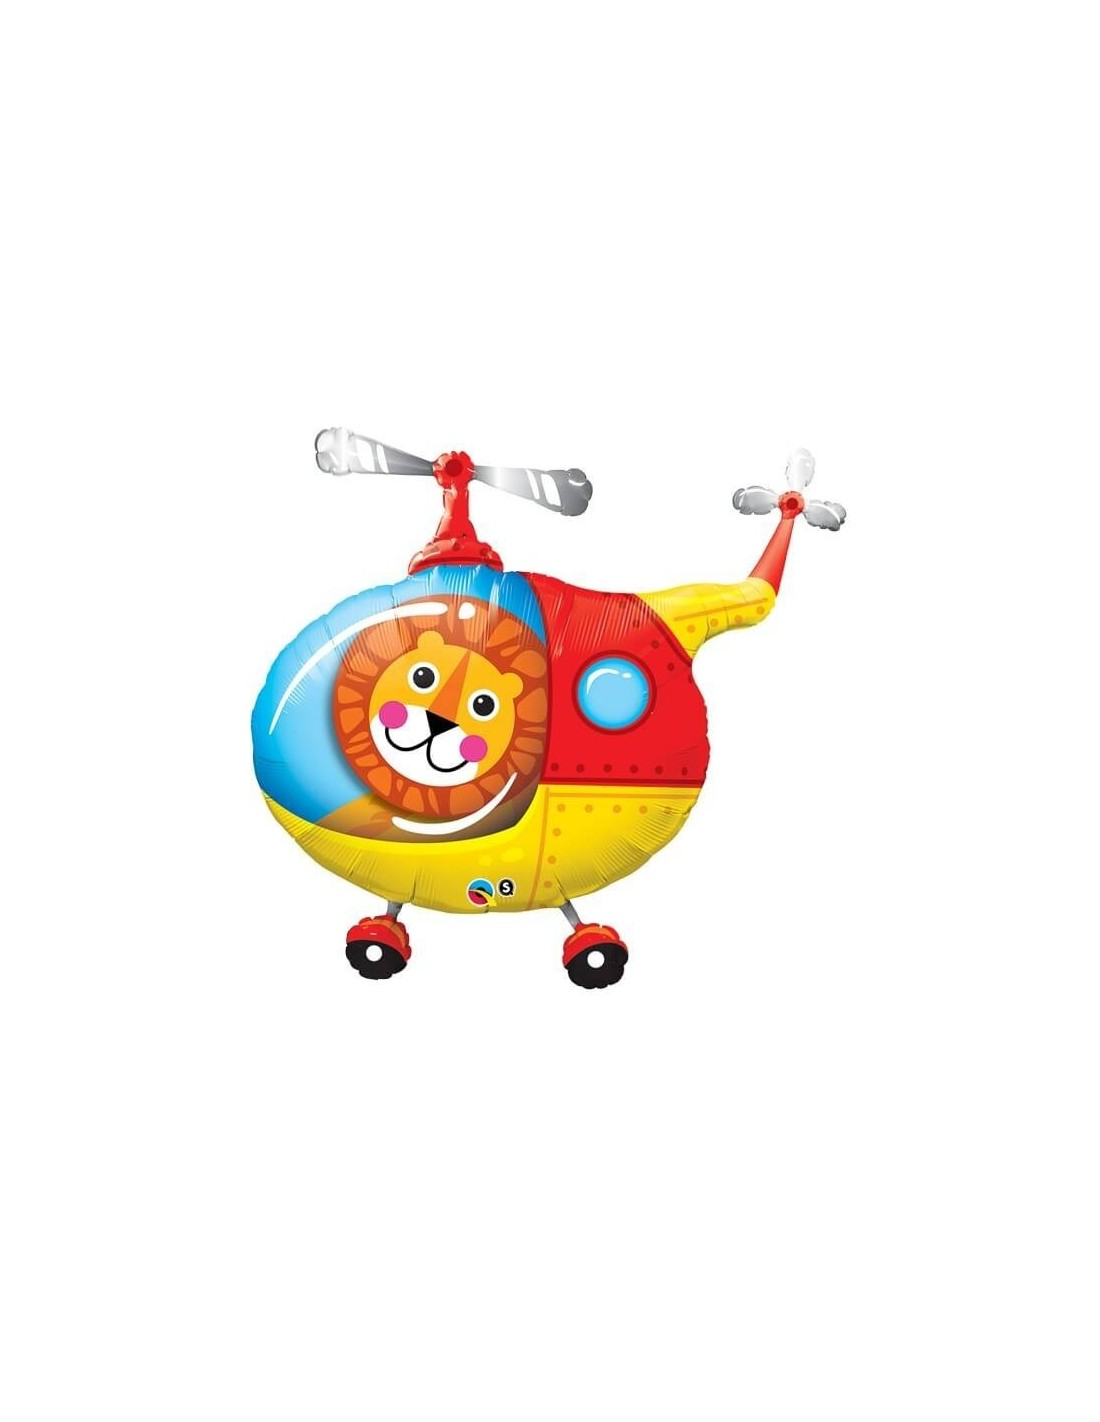 BALÃO METALIZADO - LION HELICOPTER PILOT - 35 POLEGADAS - QUALATEX #25266